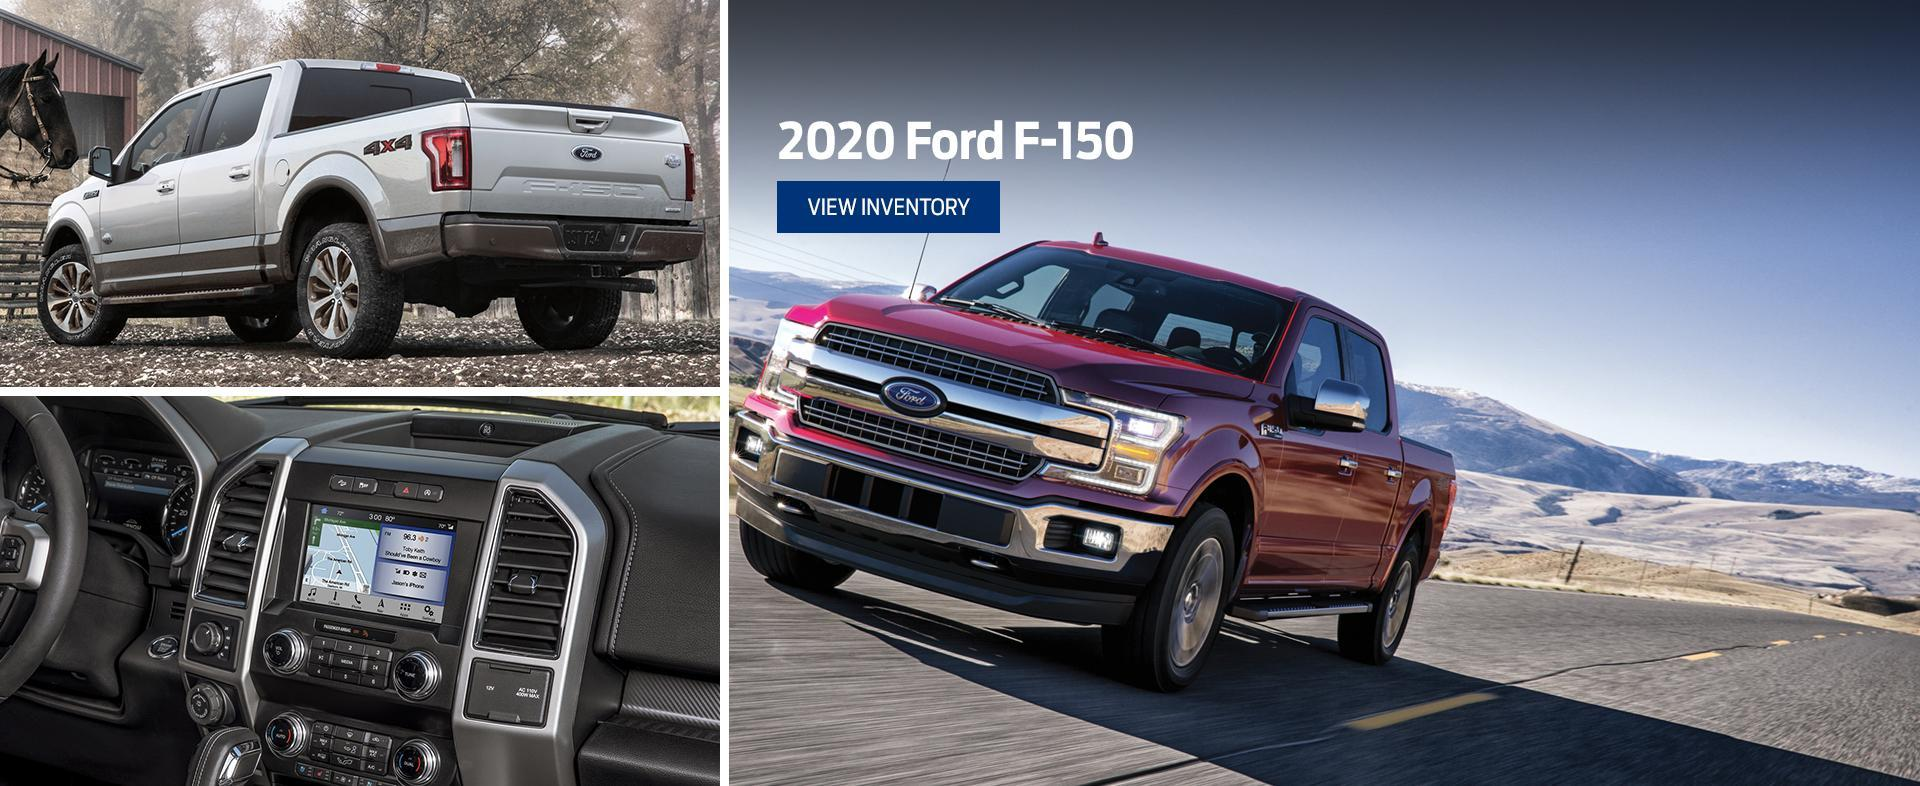 Ford Home | Taylor Ford Amherst | Amherst Ford Dealership  2020 F-150